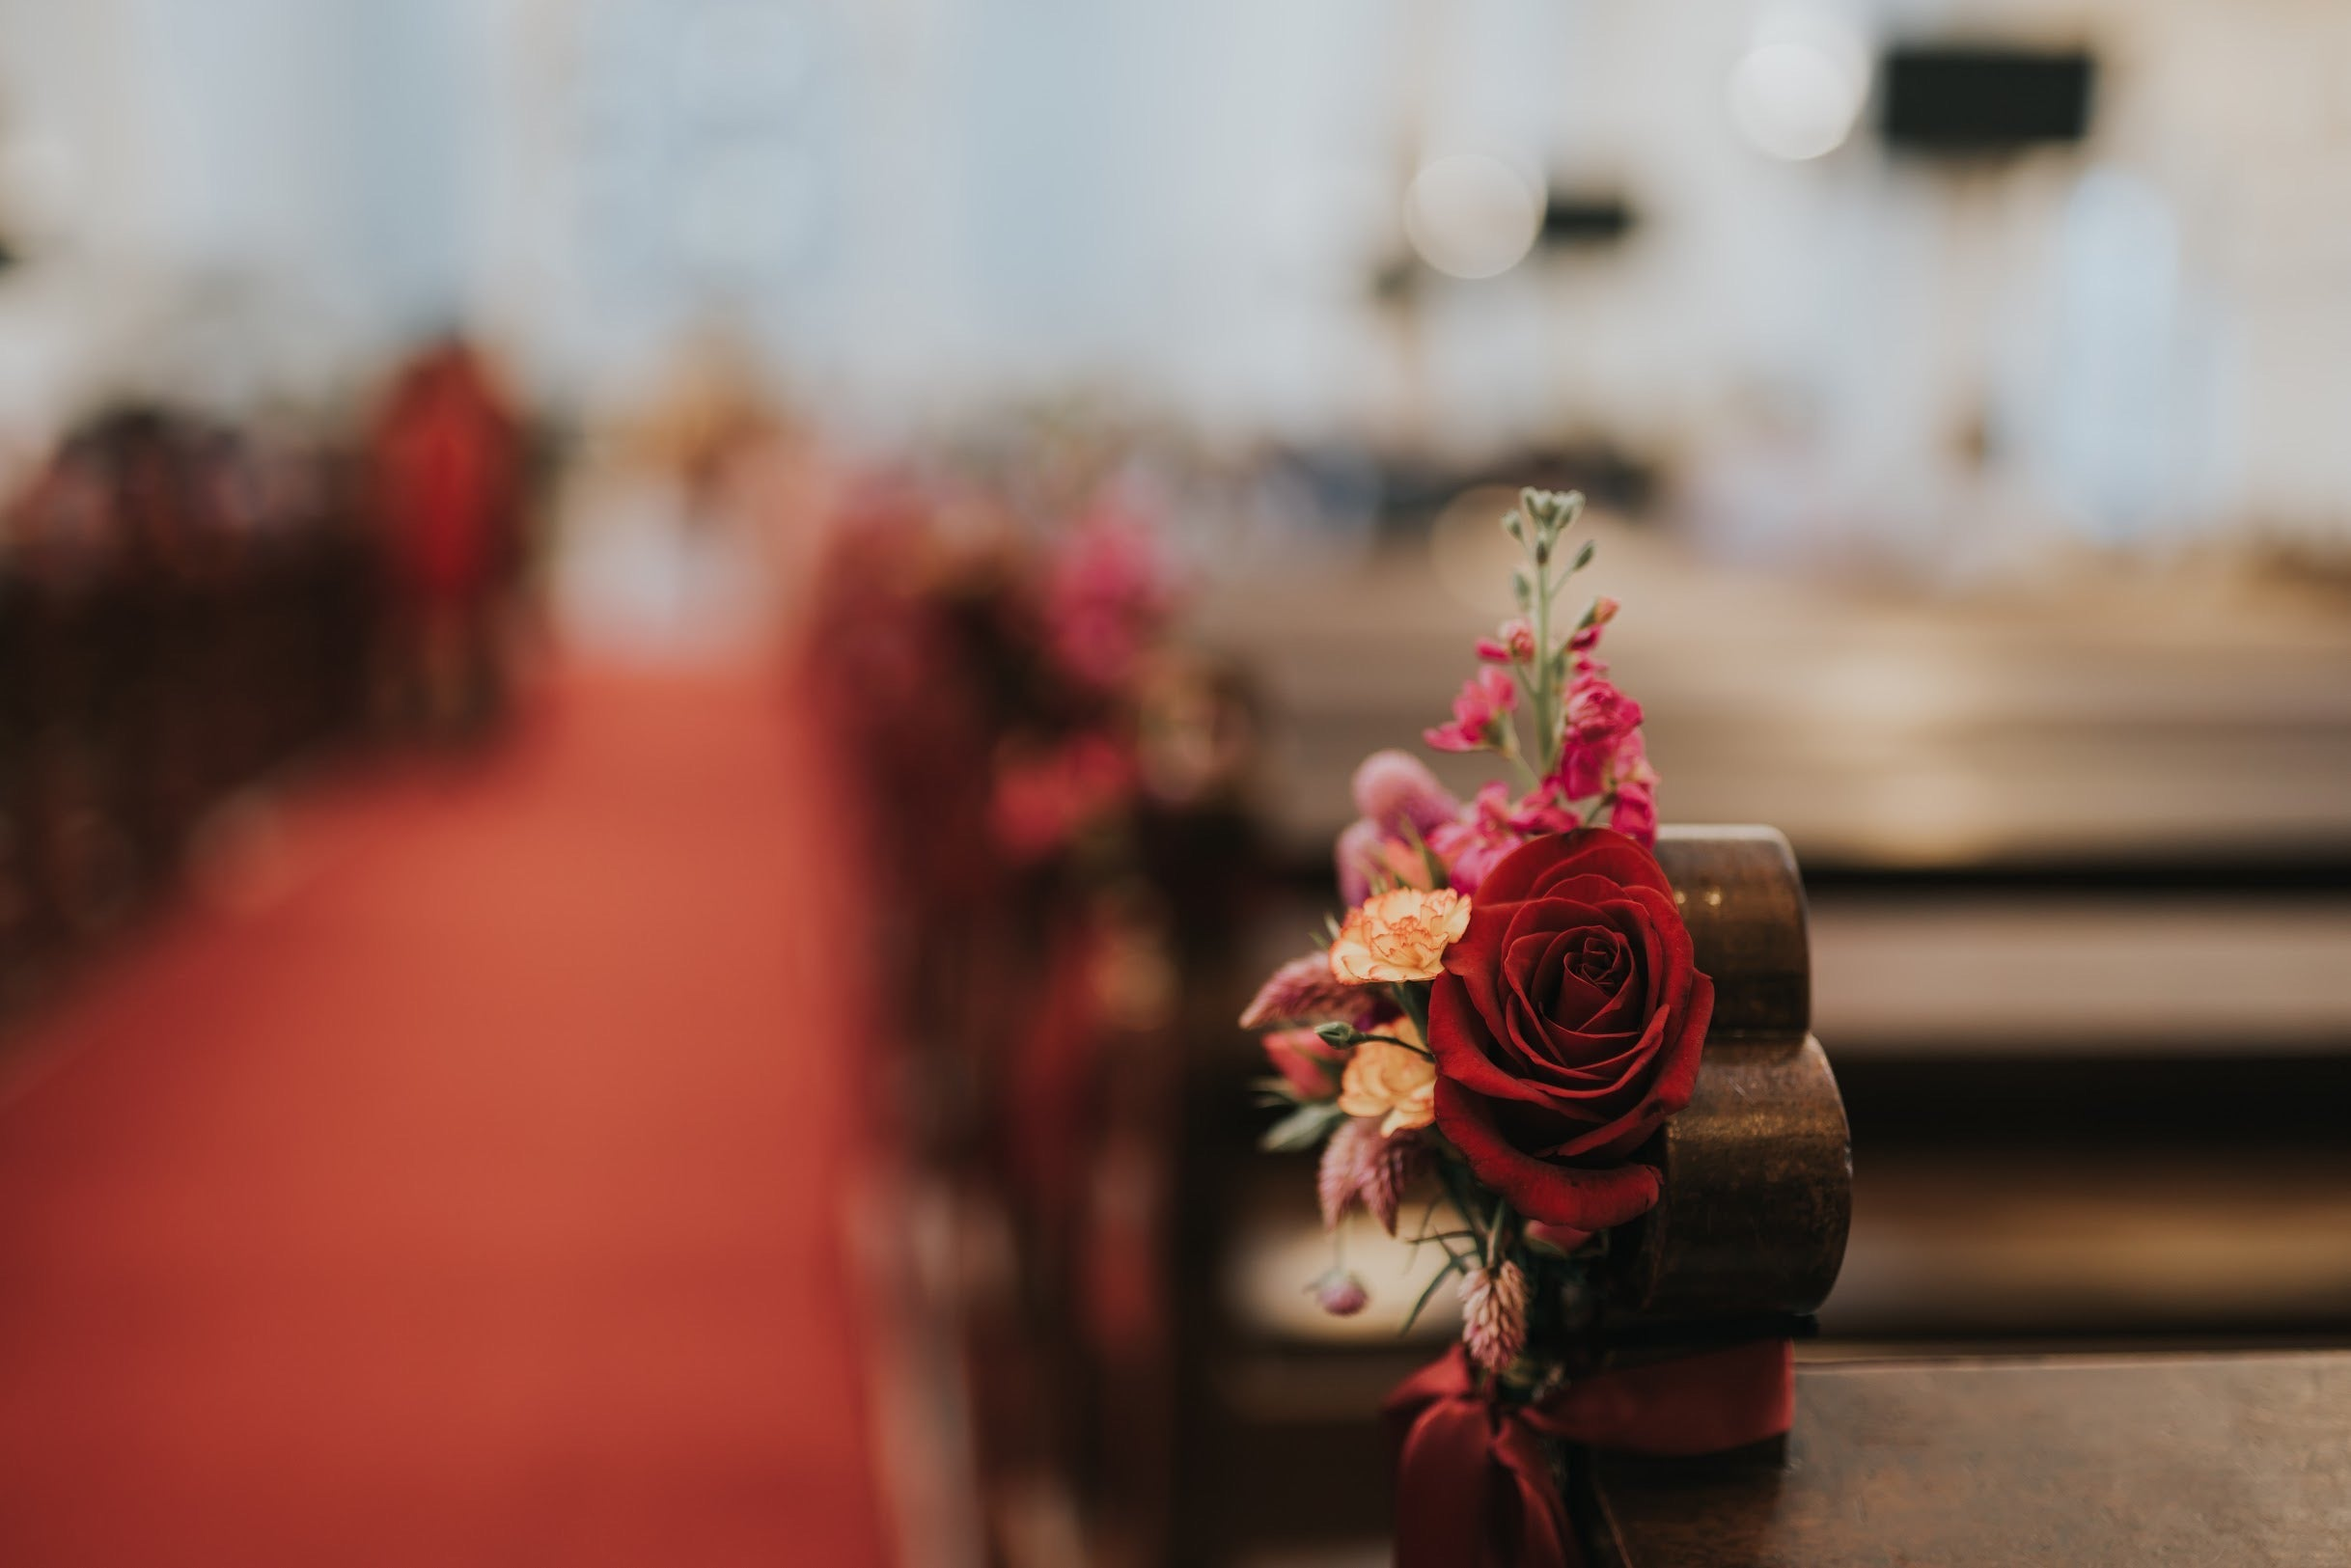 Close up of wedding church pew flower decoration for solemnisation ceremony with eustoma and red roses